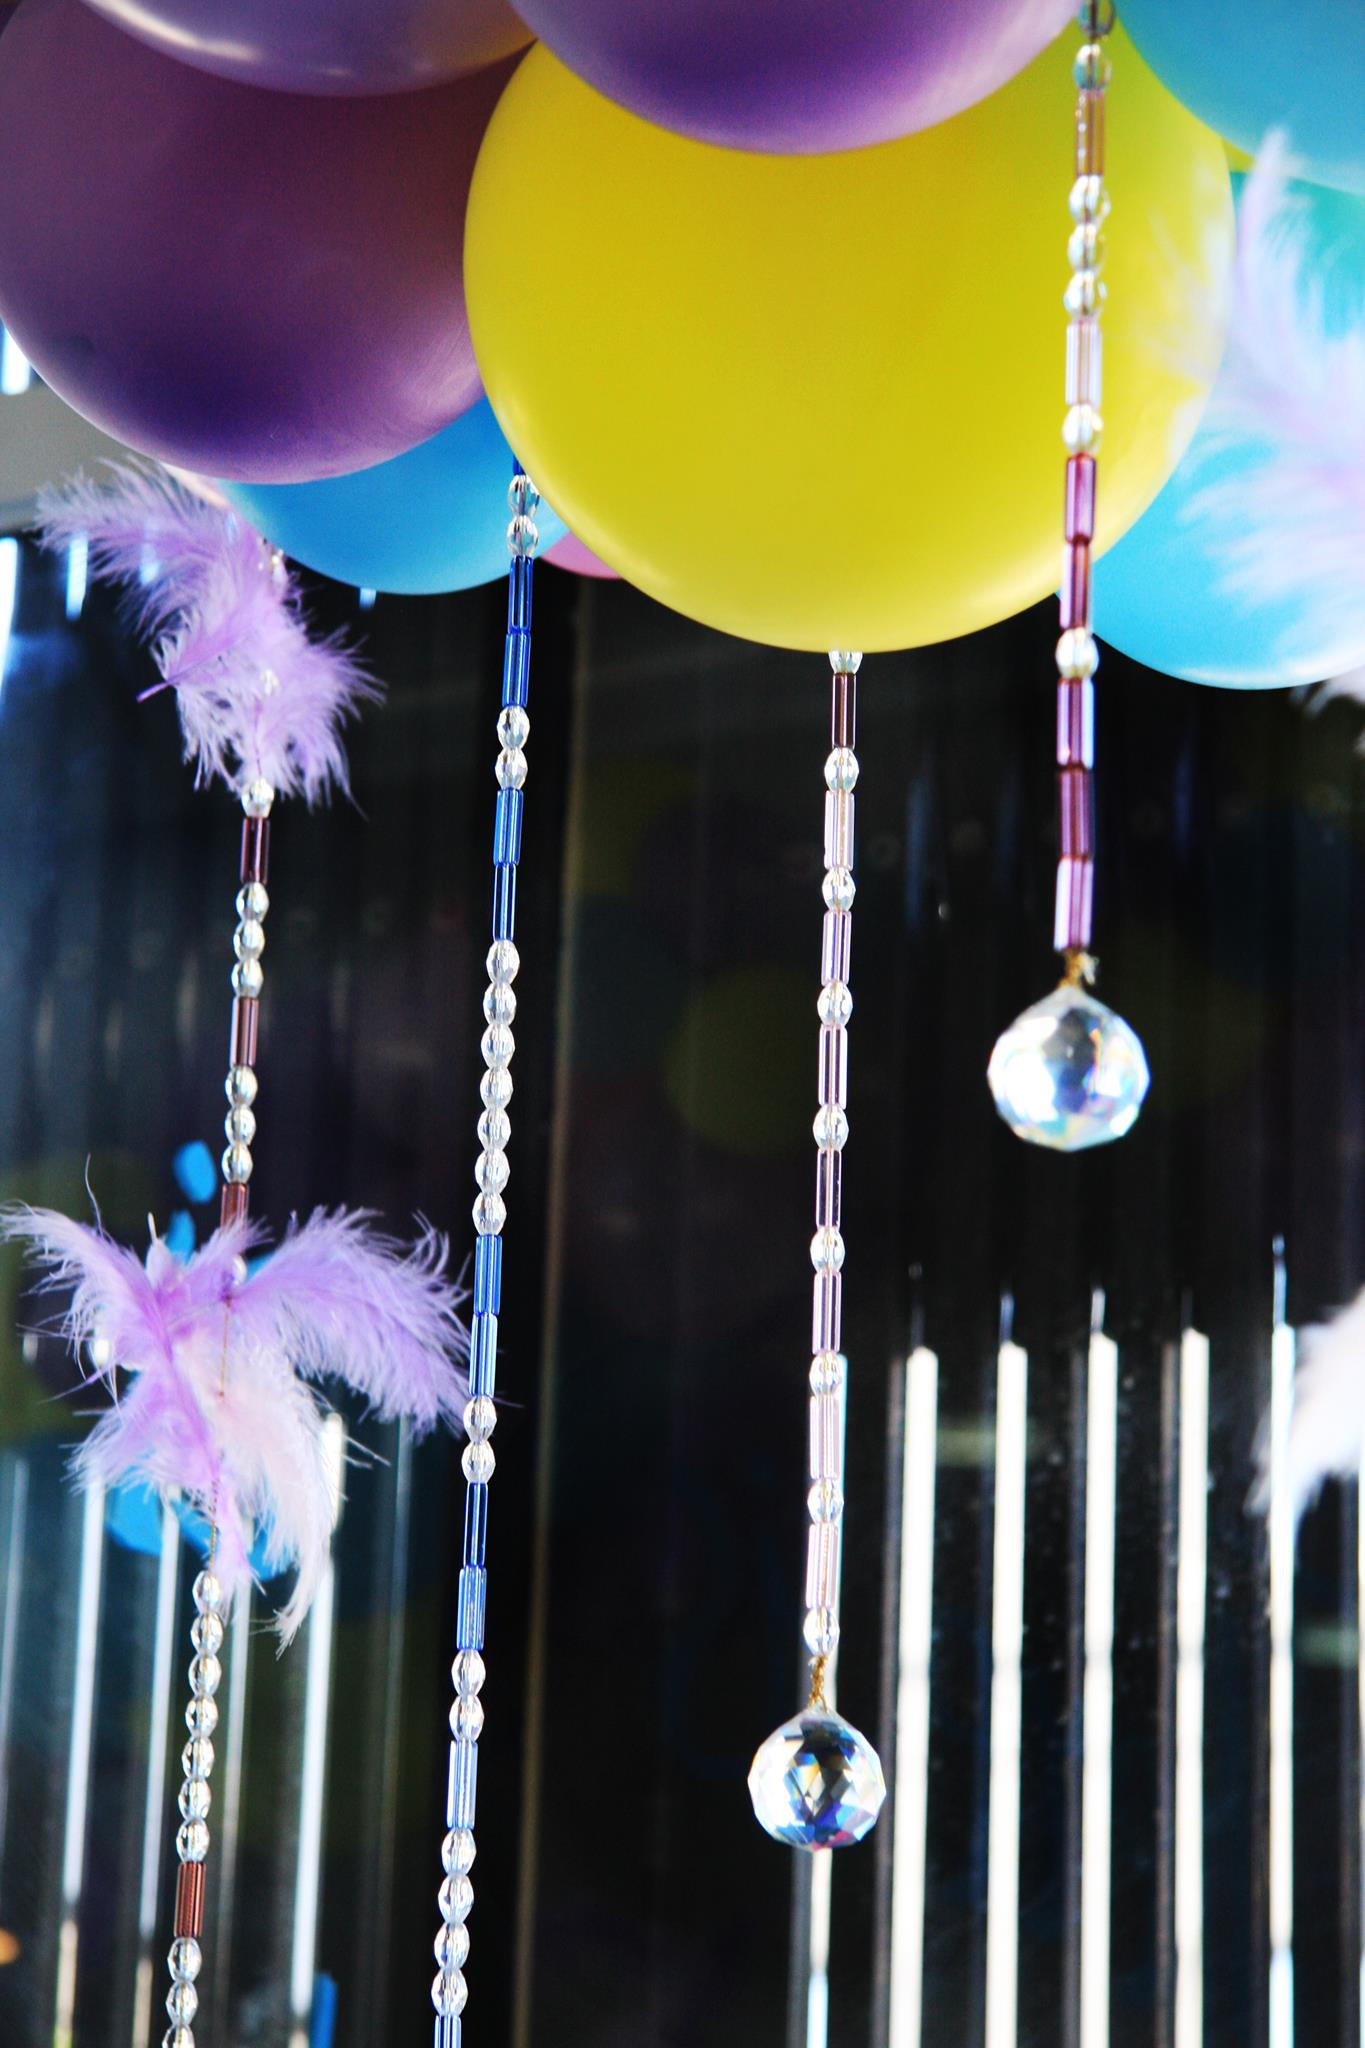 balloon-figures-large-decorated-balloons-2